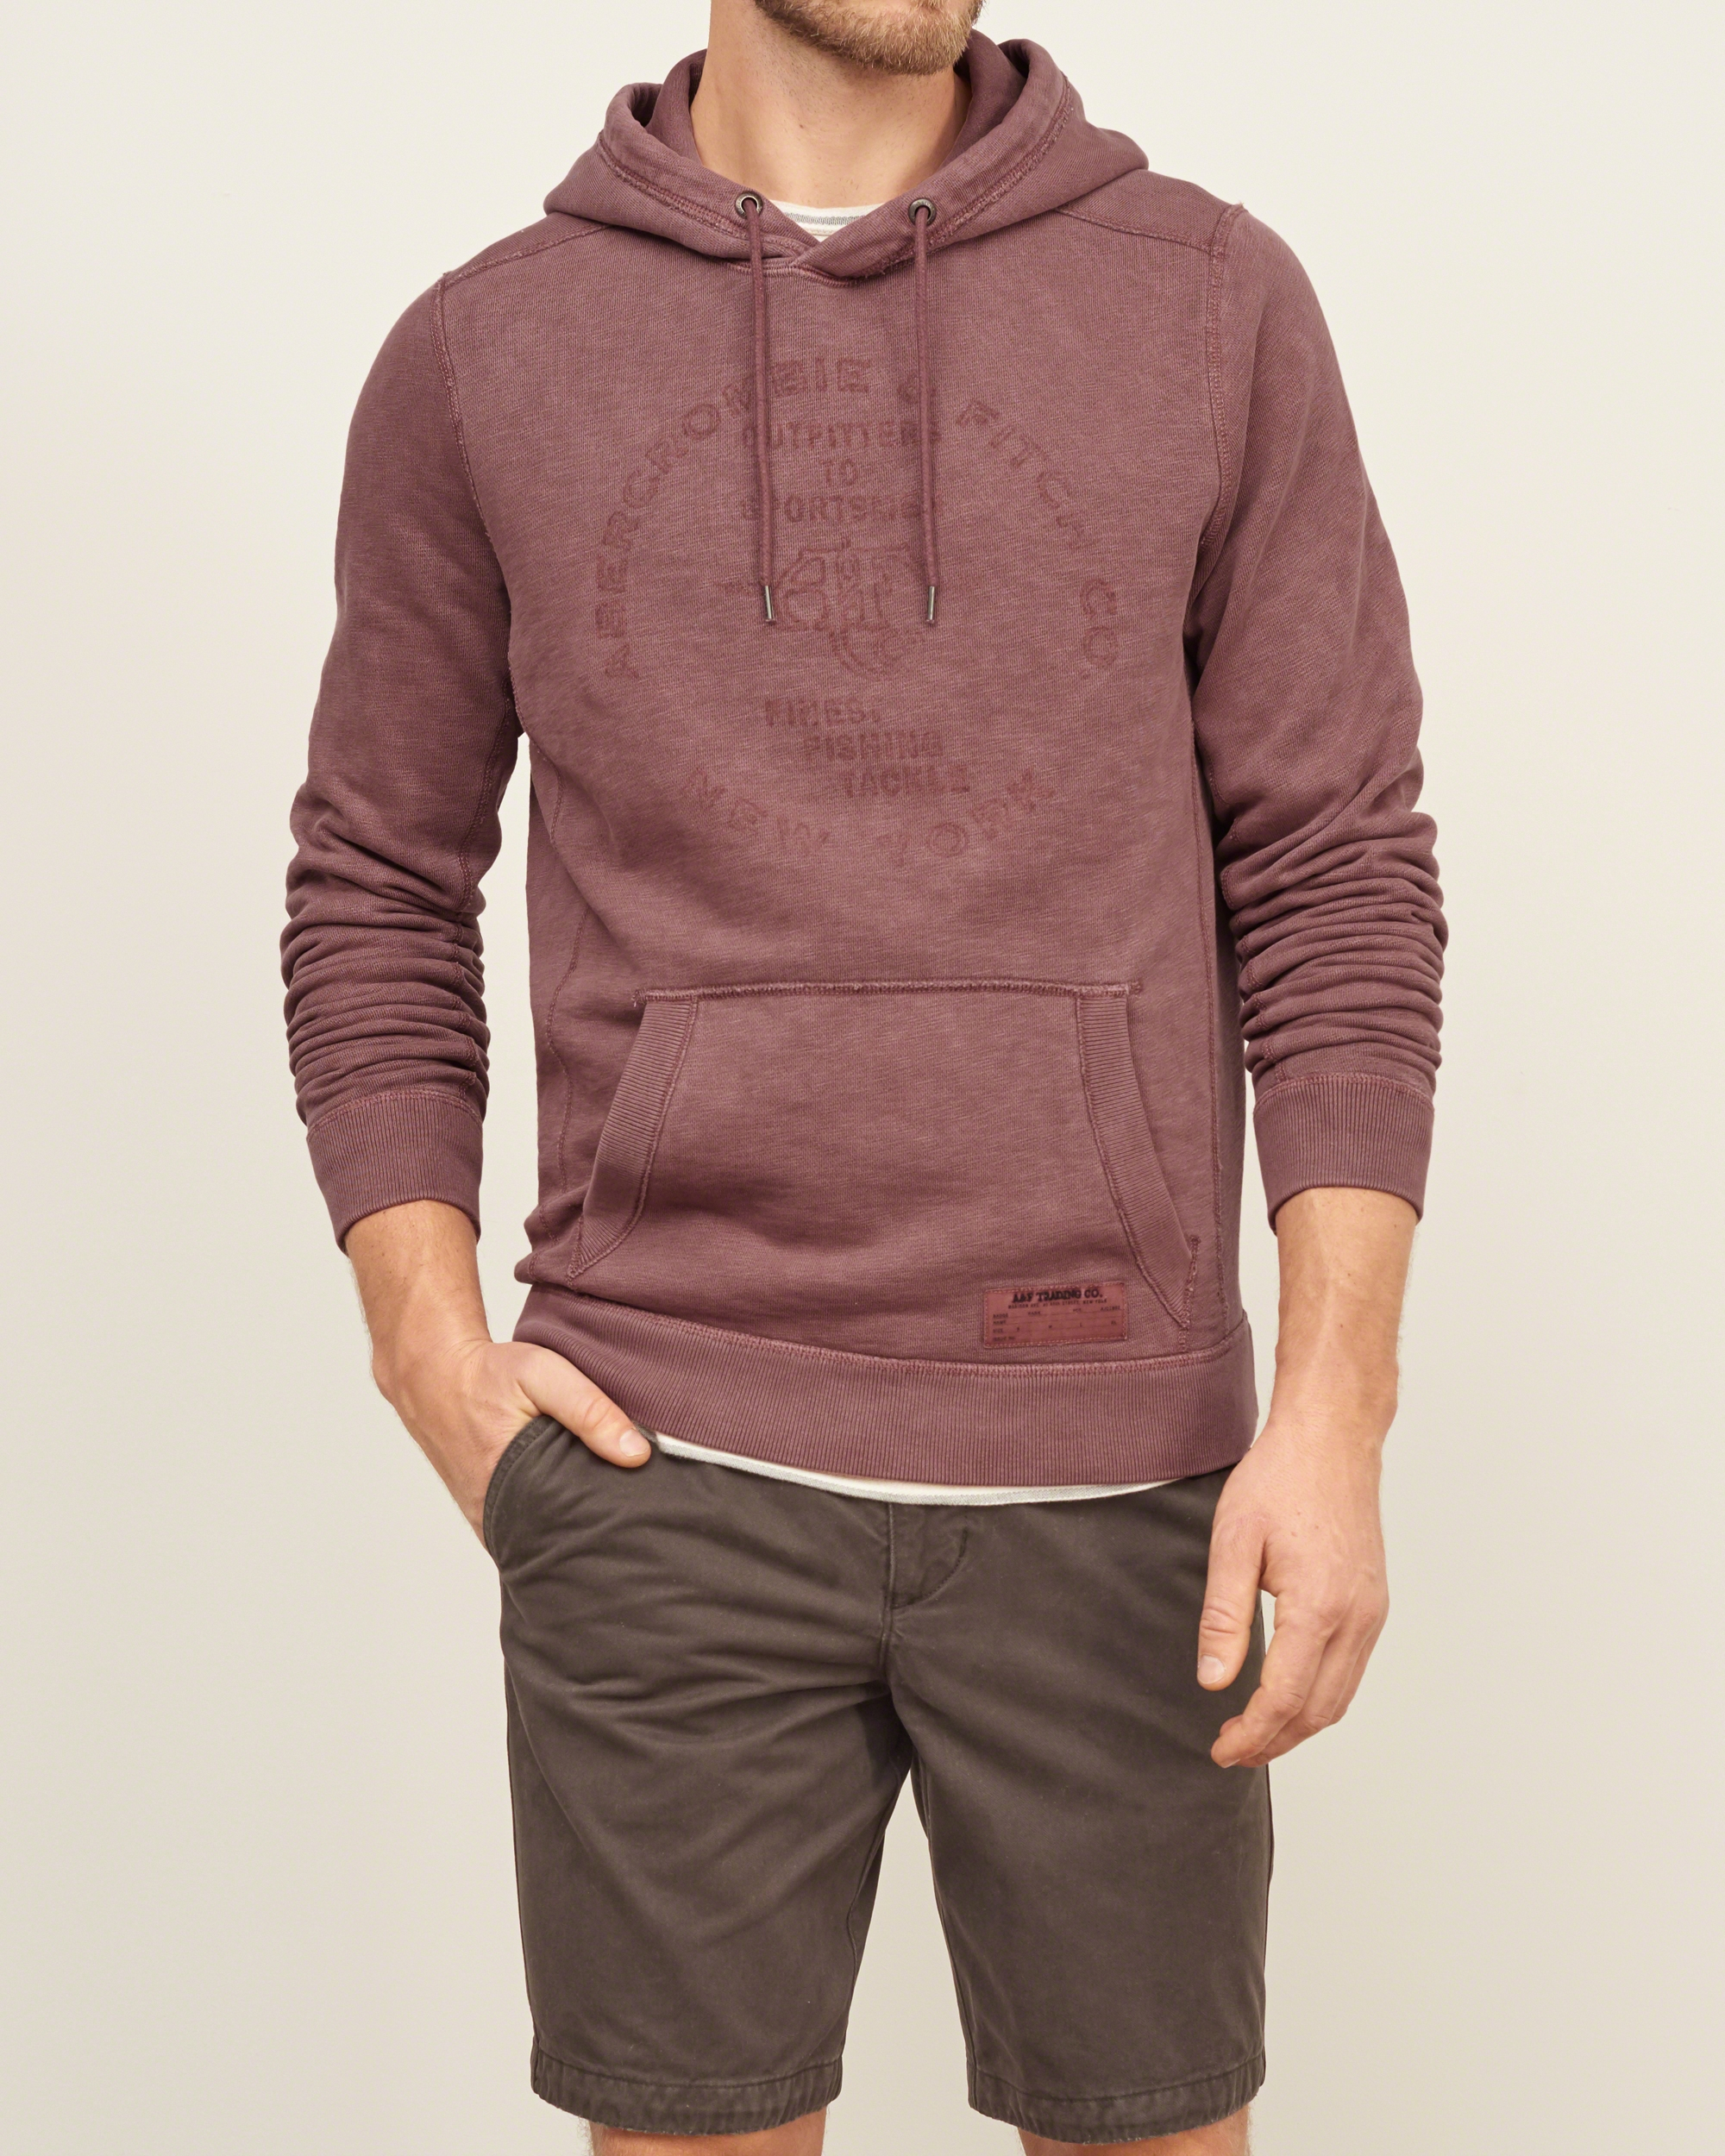 Abercrombie & Fitch Logo Graphic Hoodie In Purple